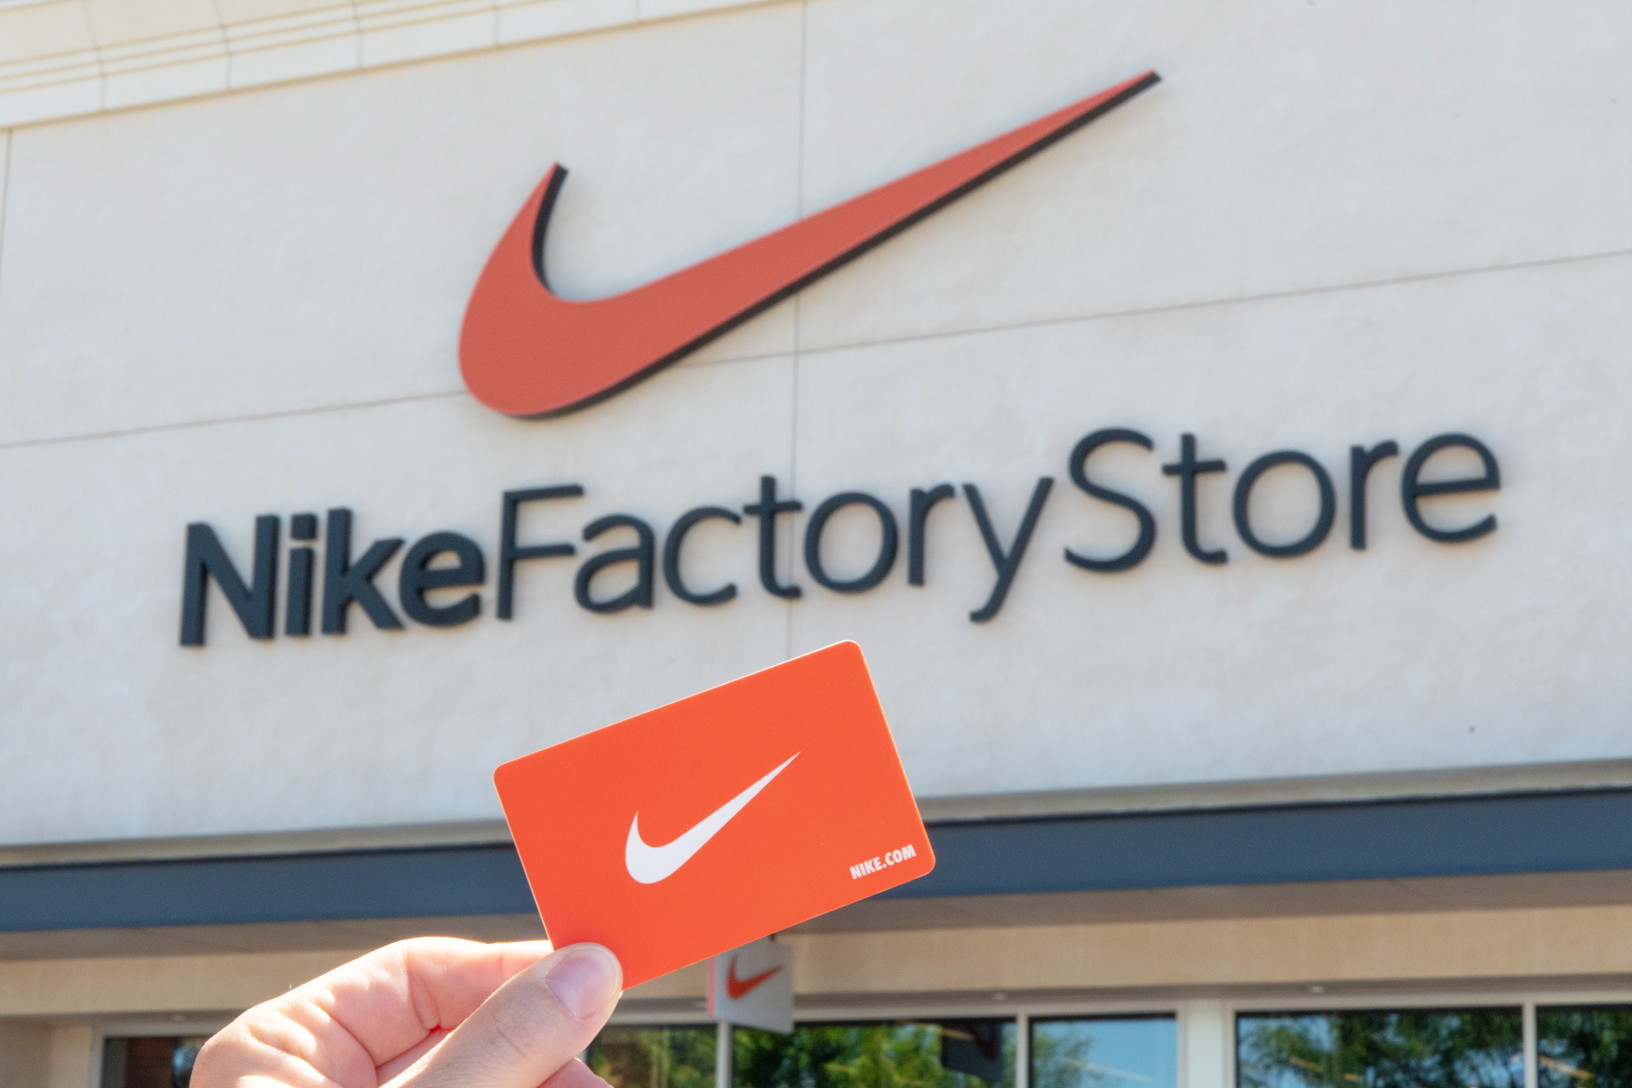 10449de425d6 33 Insanely Smart Nike Factory Store Hacks - The Krazy Coupon Lady